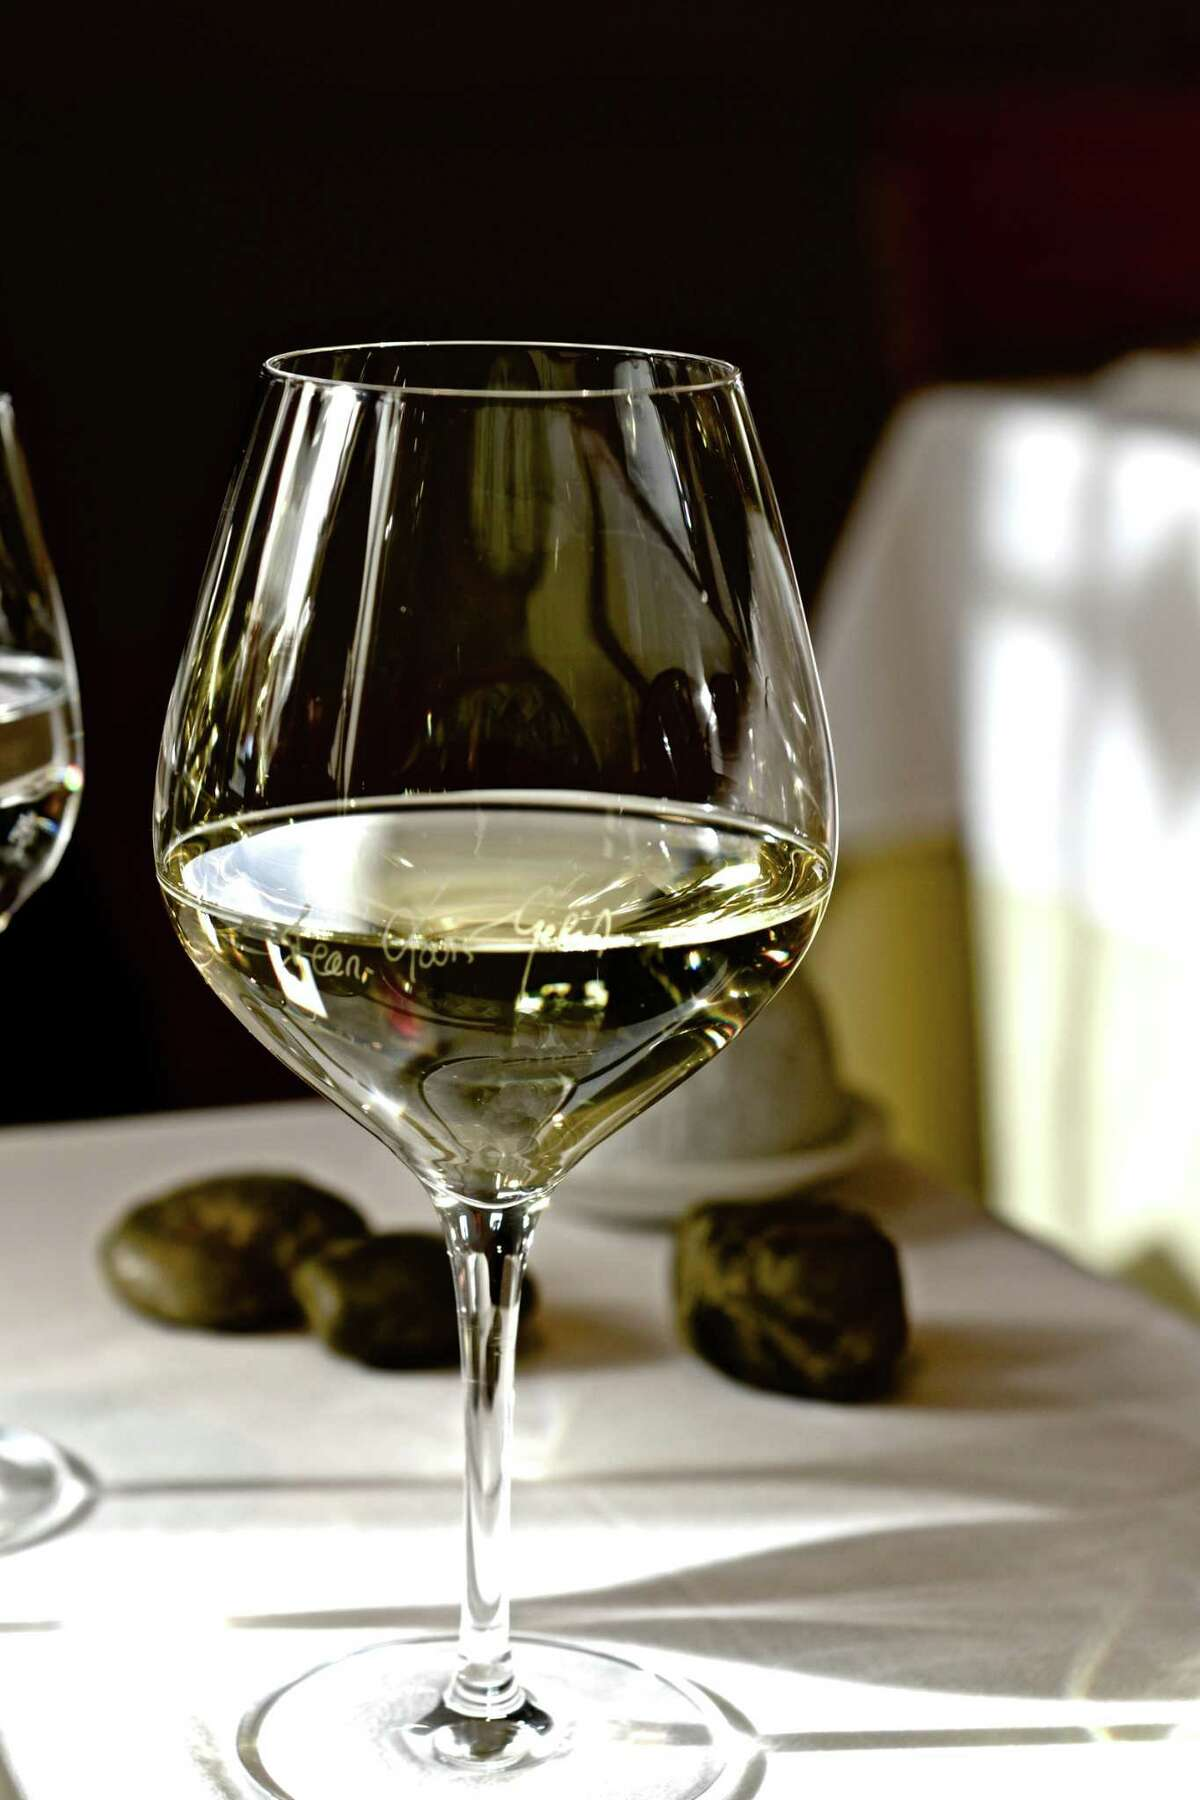 A white wine glass bearing Jean Louis Gehrin's name. The glasses are available on the chef's website.